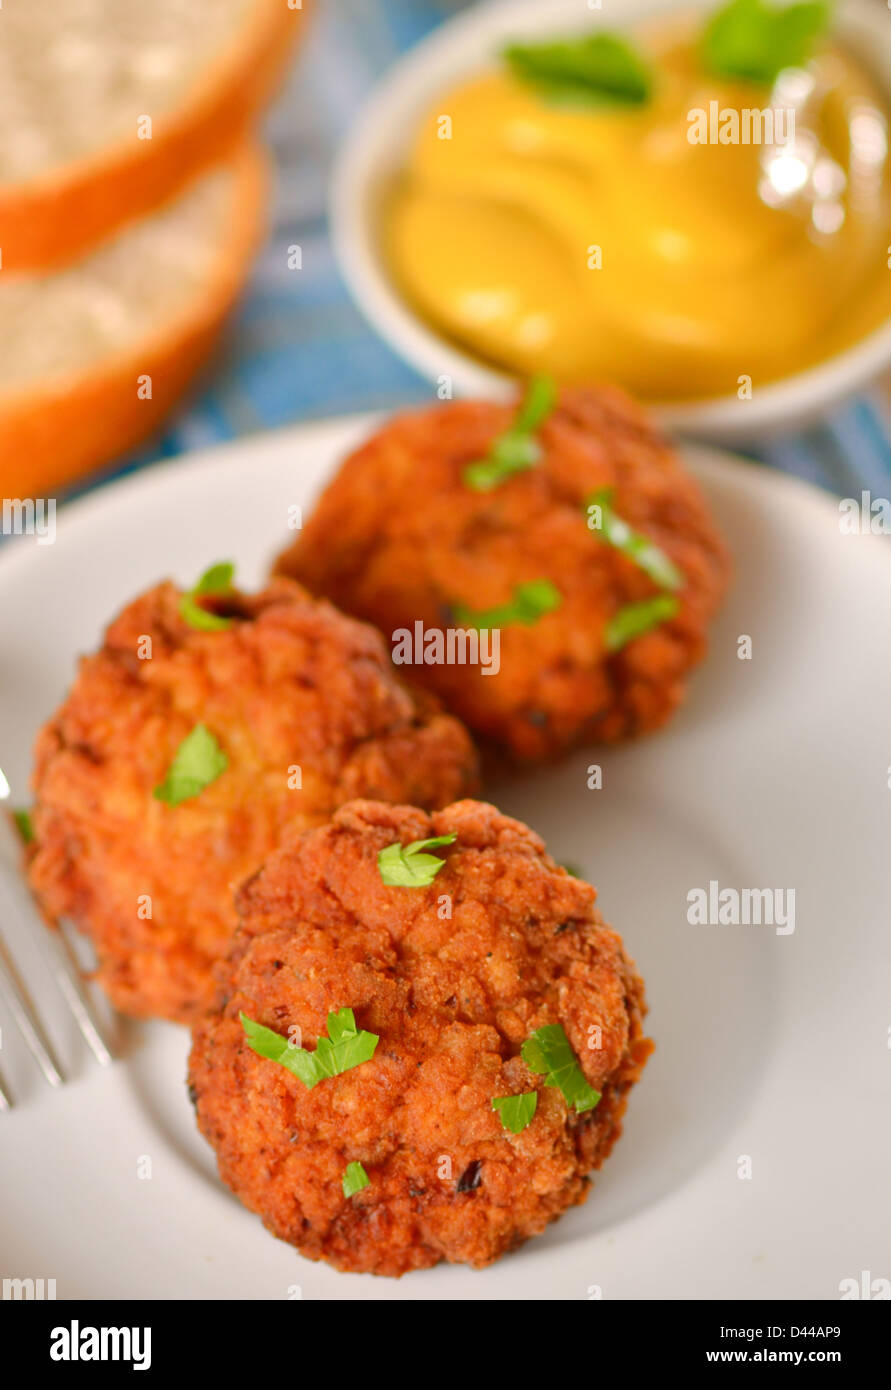 meat balls with mustard on white dish - Stock Image